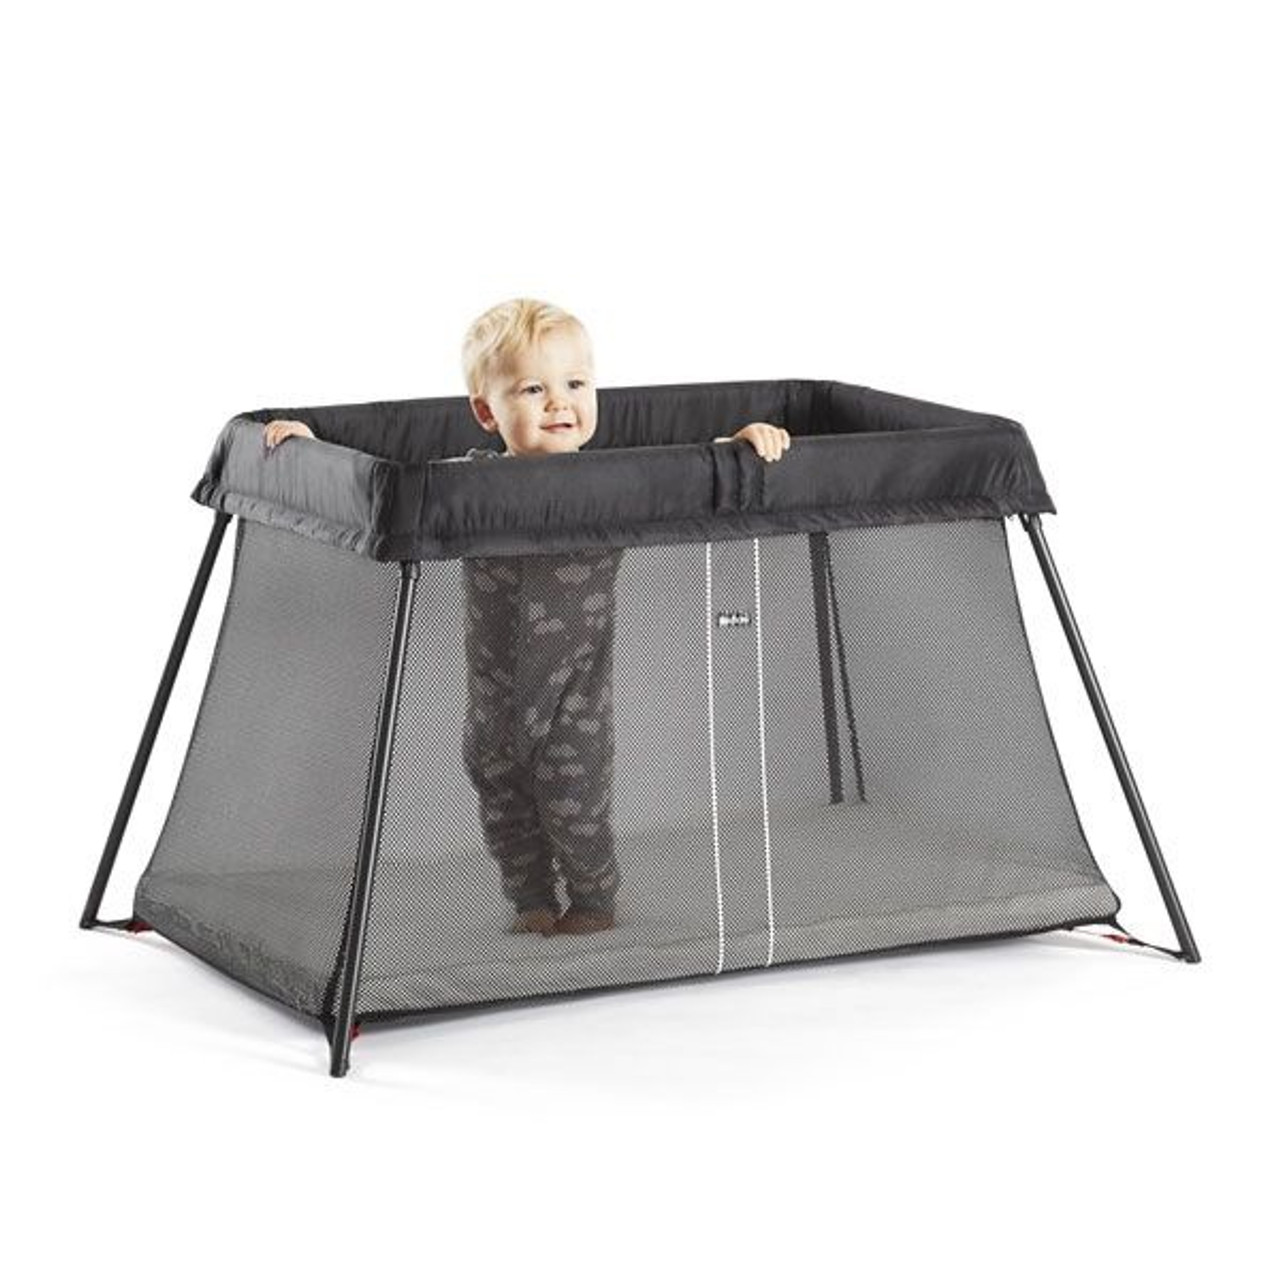 Baby Bjorn Travel Cot Light - Black Mesh at Baby Barn Discounts Baby Bjorn lightweight travel cot that is simple to set up and fold up, easy to take with you, soft and comfy mattress, removable and washable cot textiles.